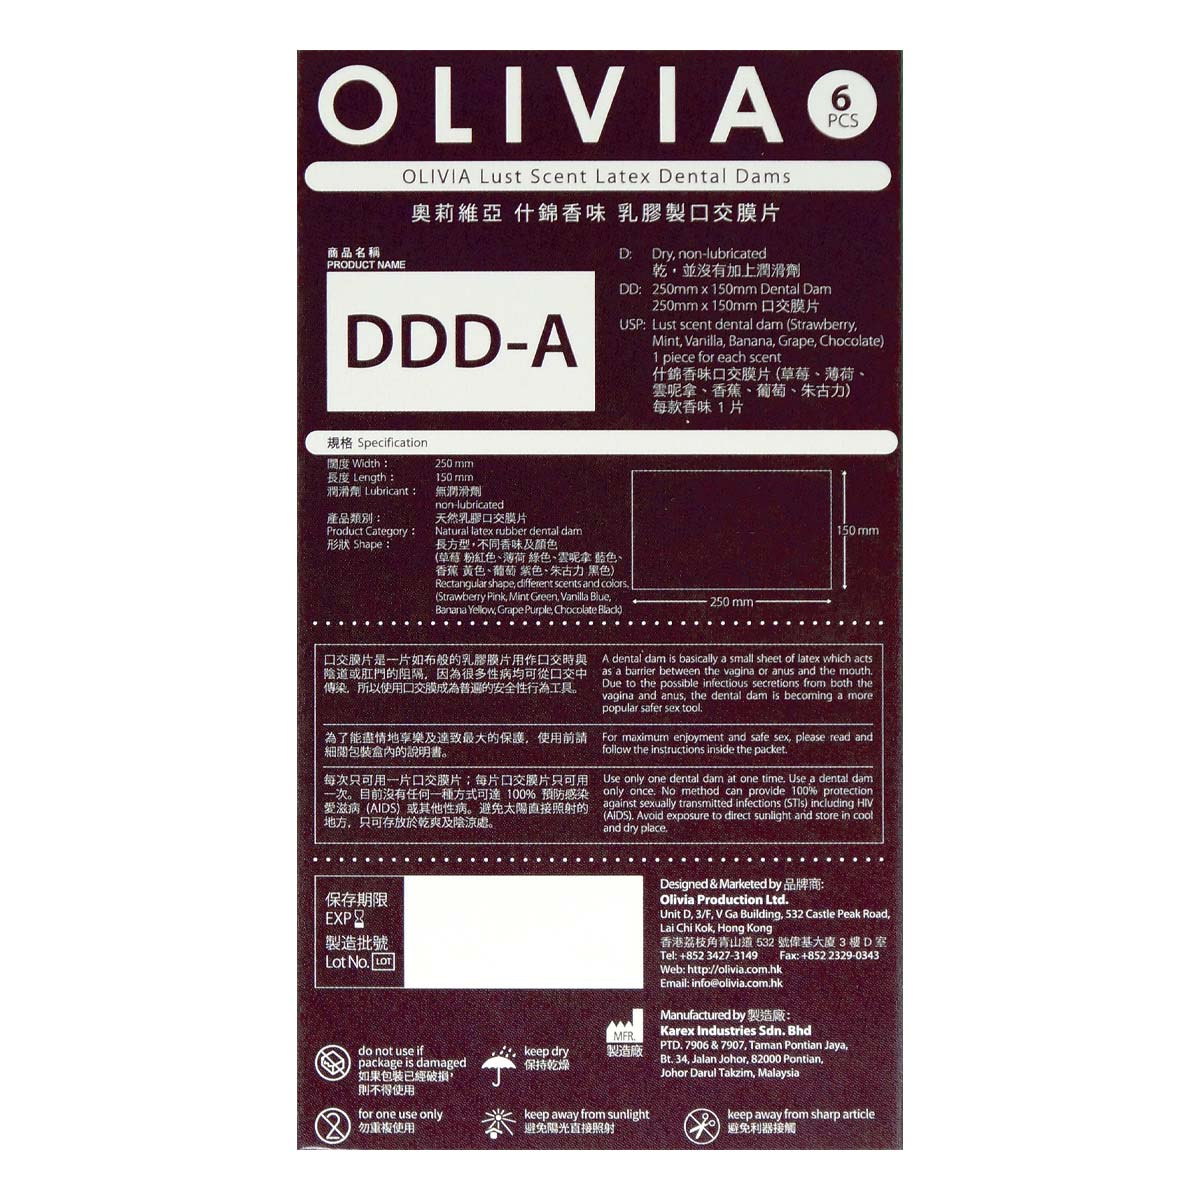 Olivia Lust Scent 6's Pack Latex Dental Dam